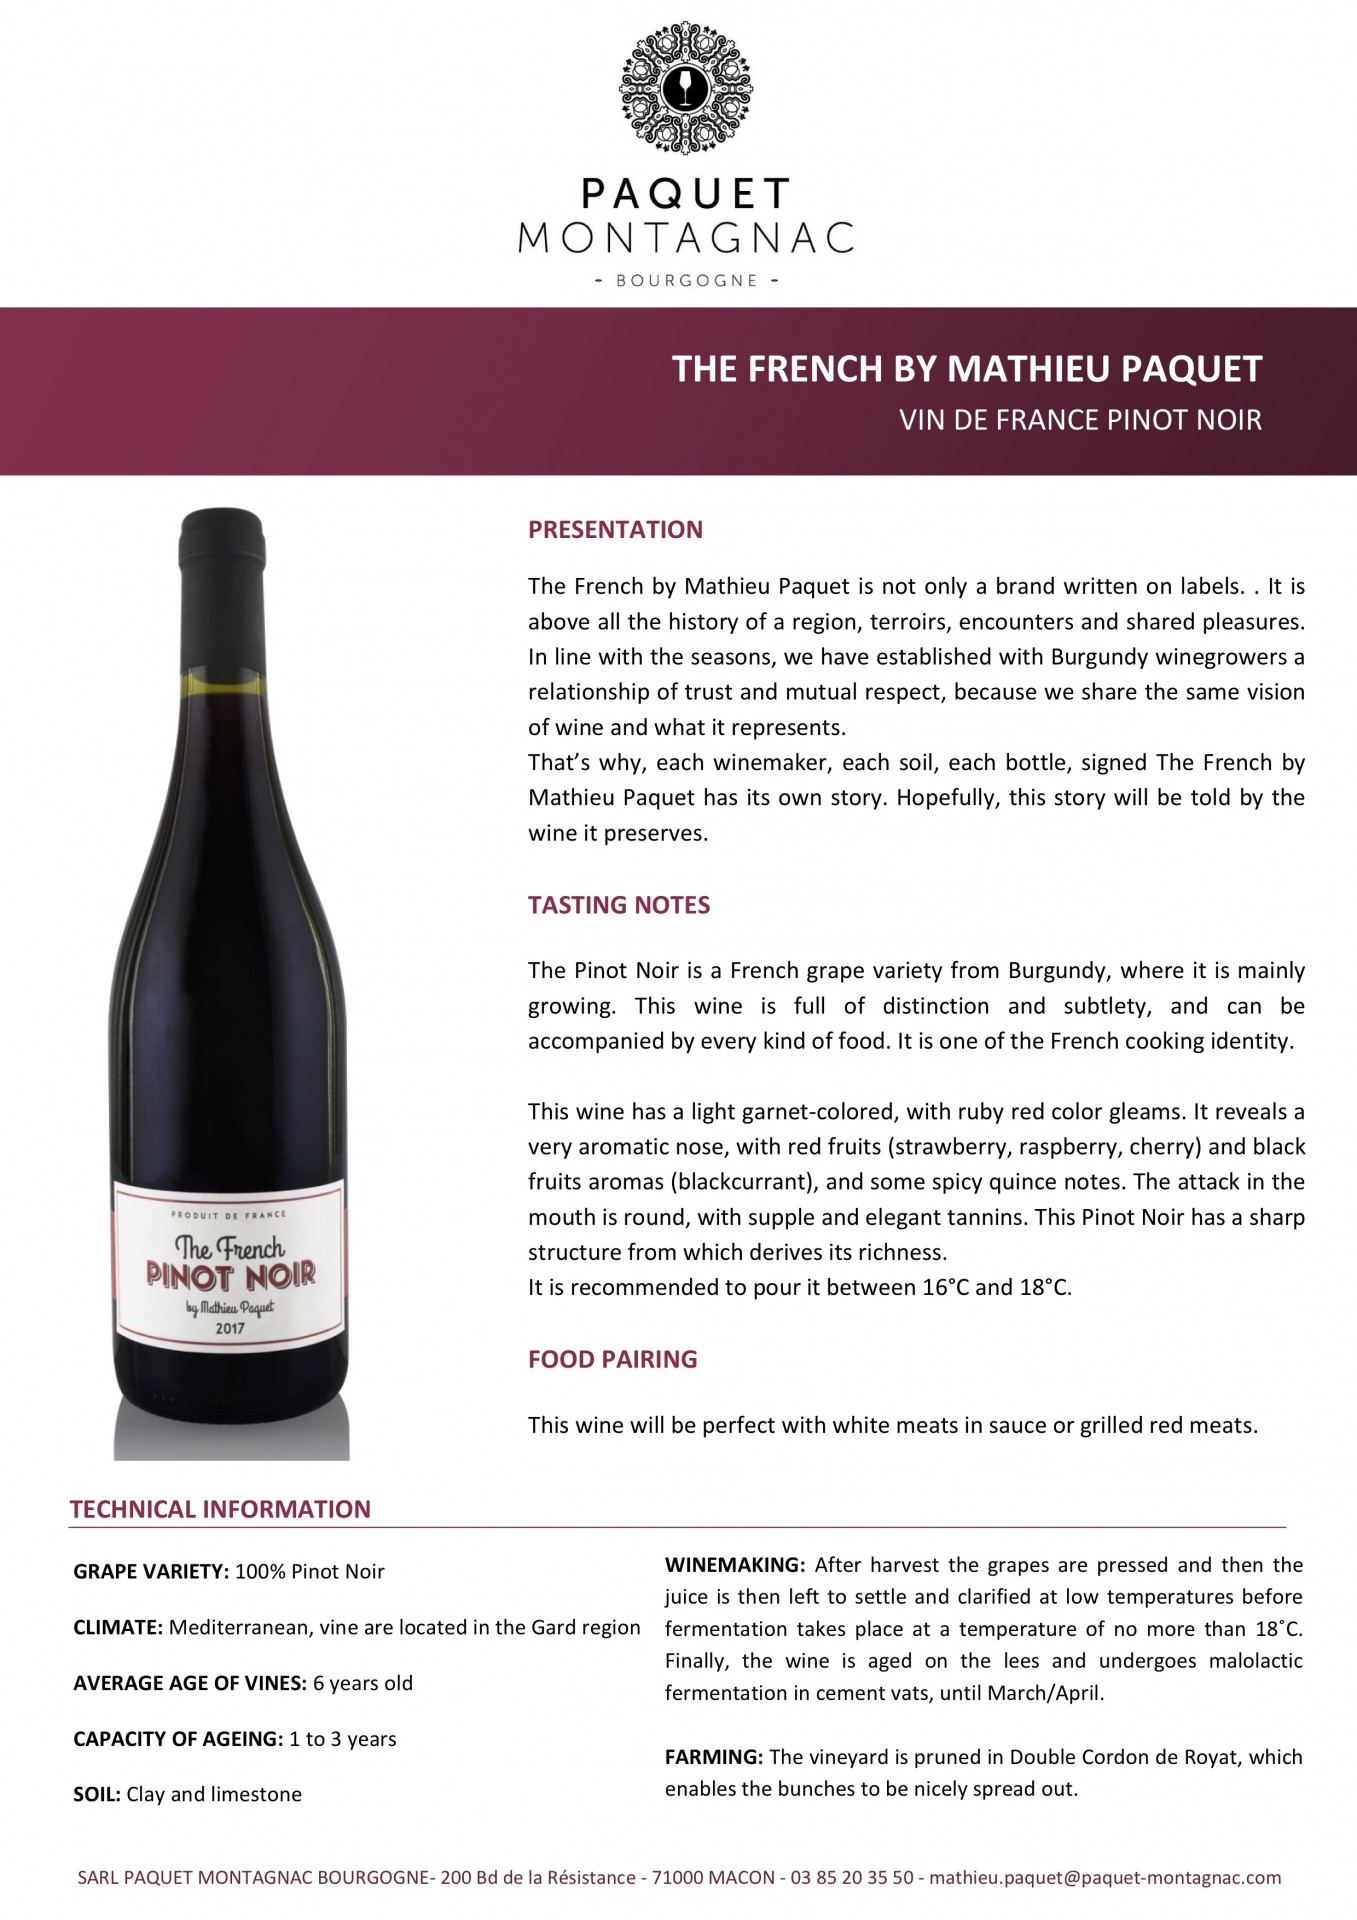 The French Pinot Noir